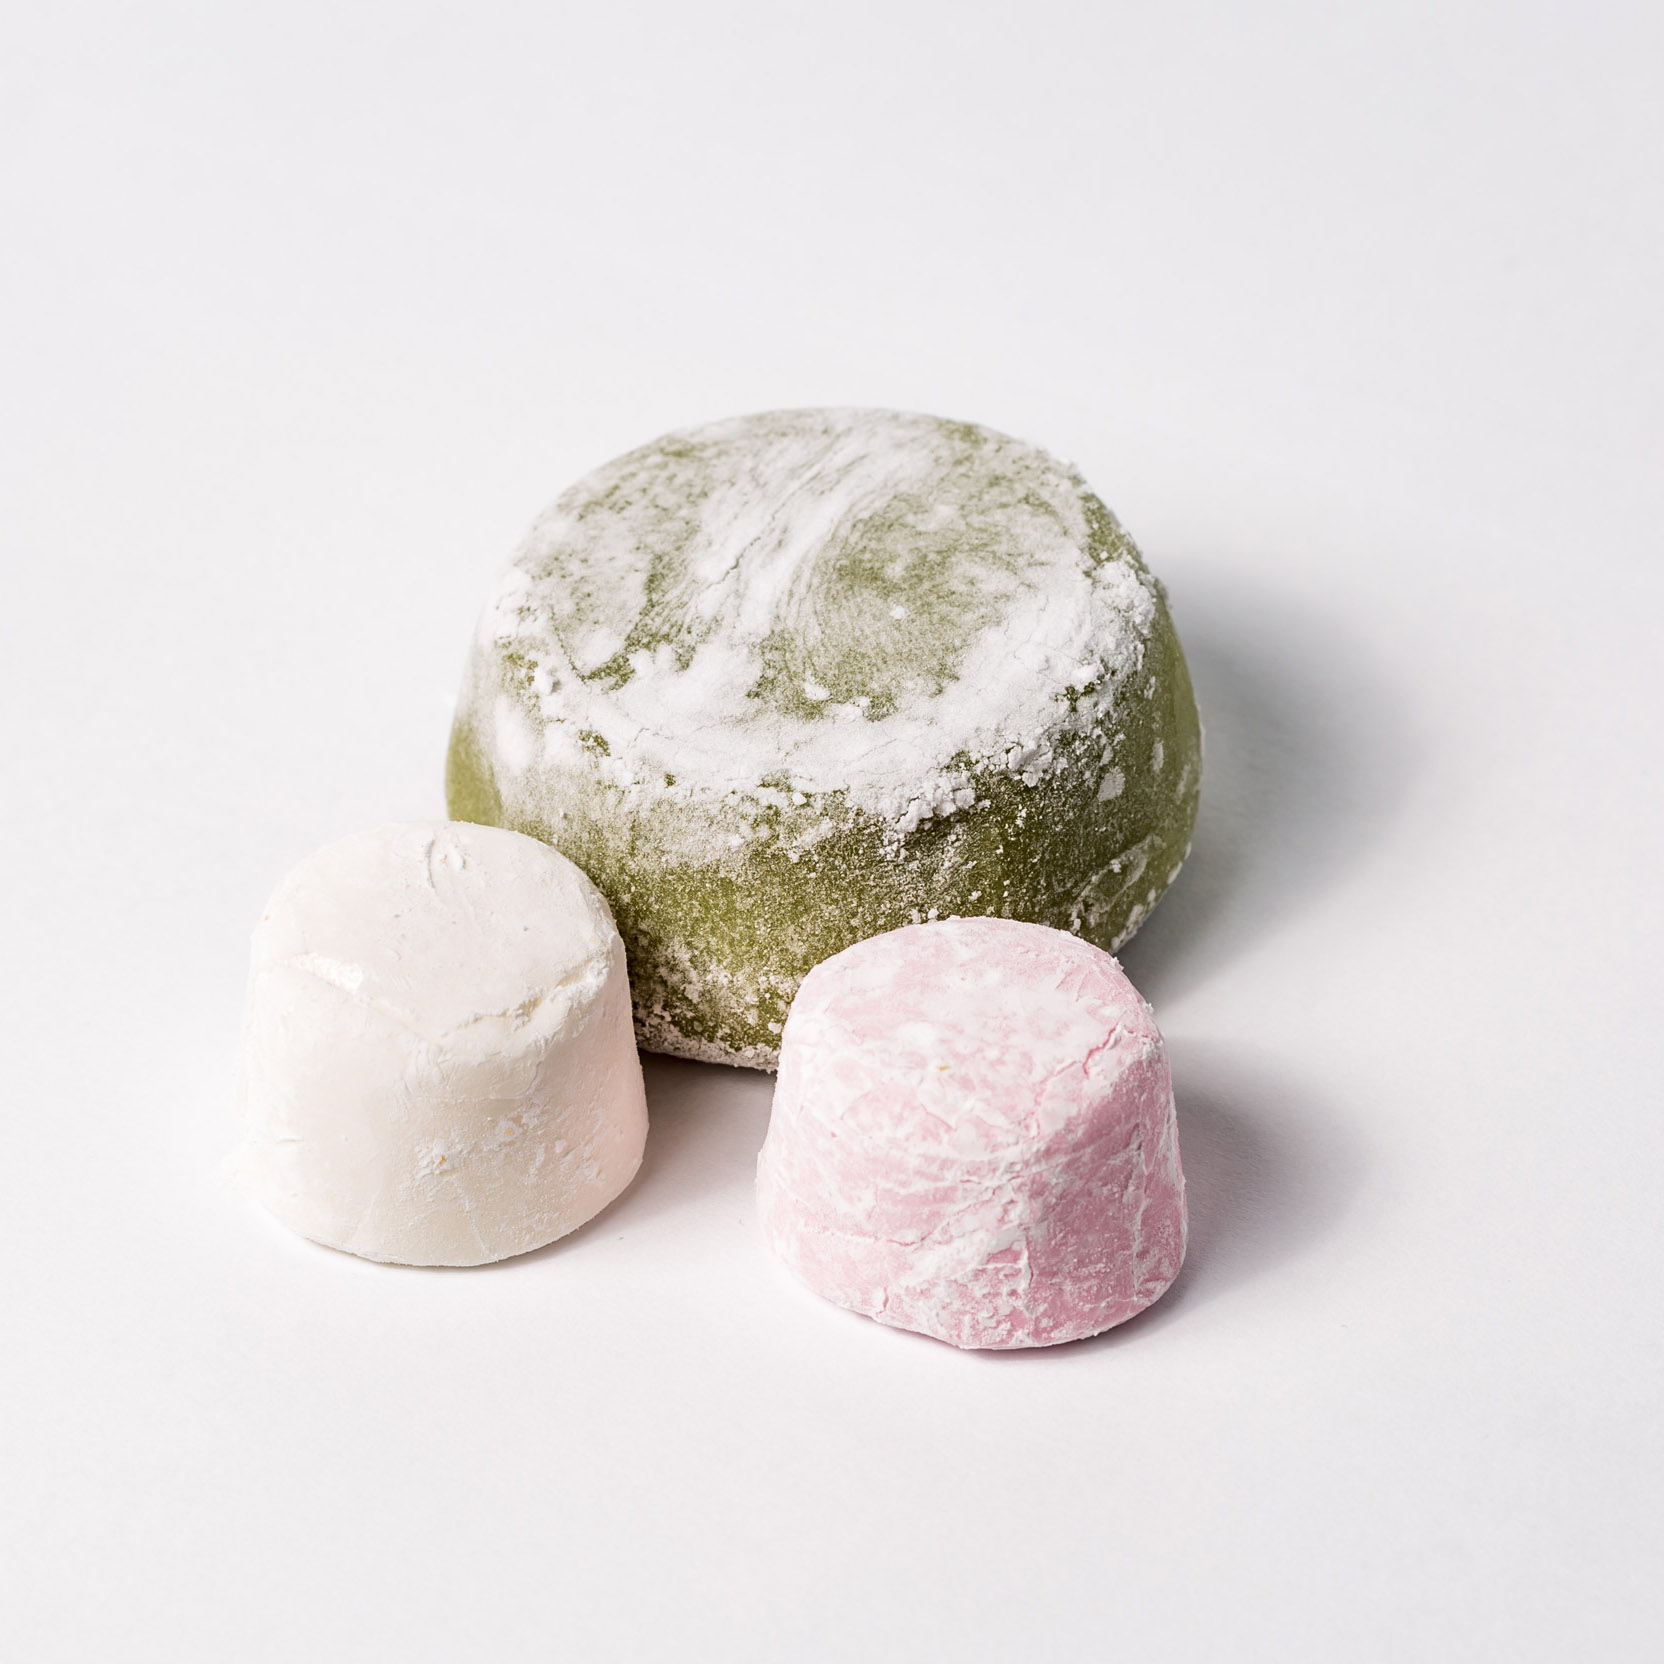 Mochi Ice Cream (Green Tea)